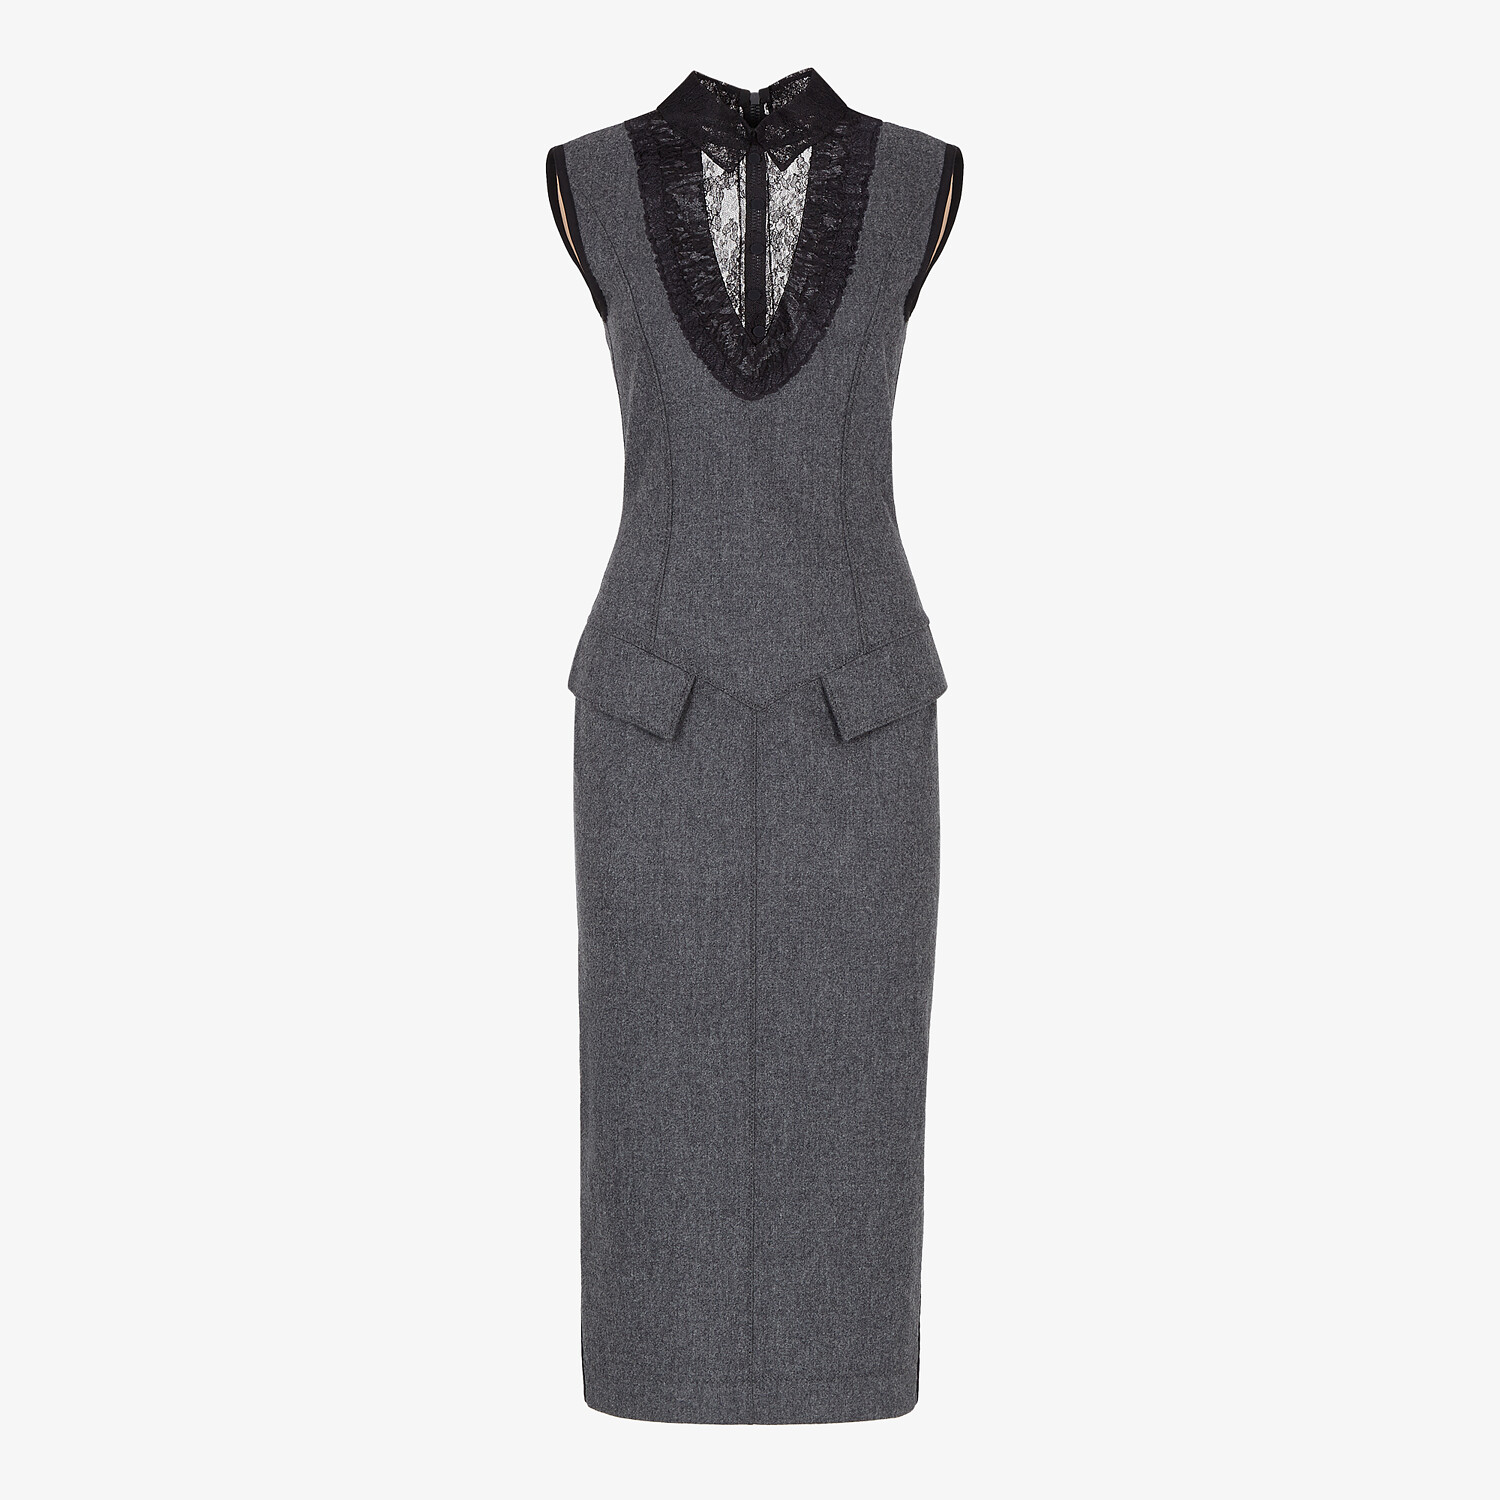 FENDI DRESS - Gray cashmere dress - view 1 detail